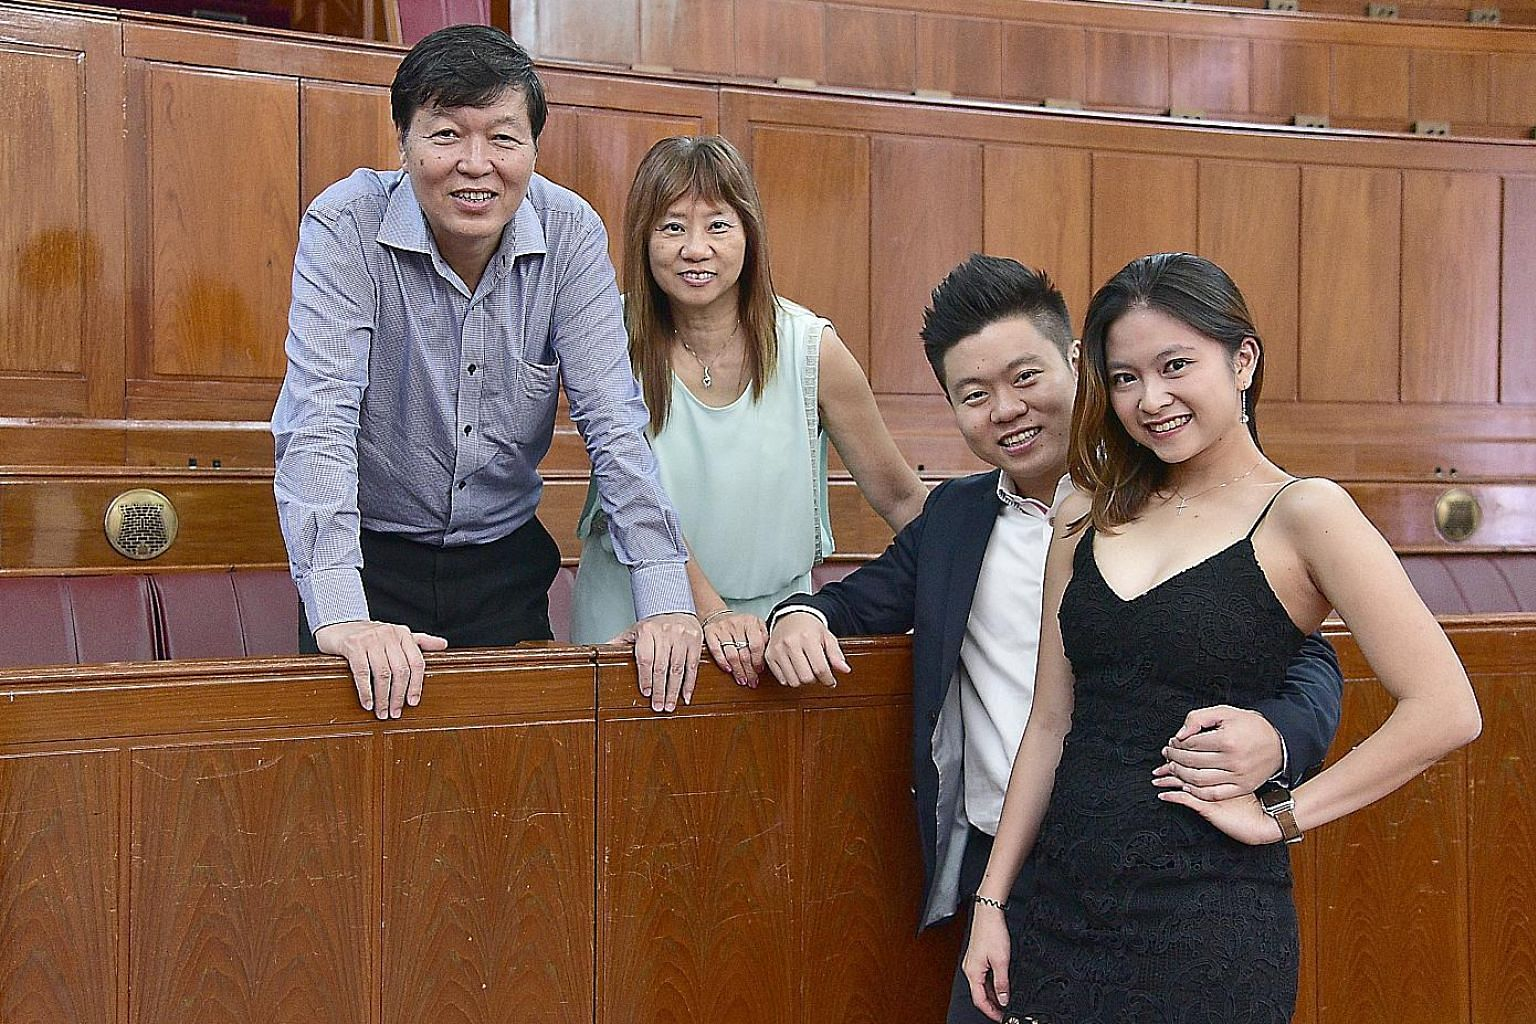 Wonderlabs co-founder and chief executive Ivan Chang with girlfriend Charmain Tan and parents Eddie Chang and Lindy Neo. The SMU alumnus credits his parents with teaching him the value of thriftiness, and the importance of having insurance that is no